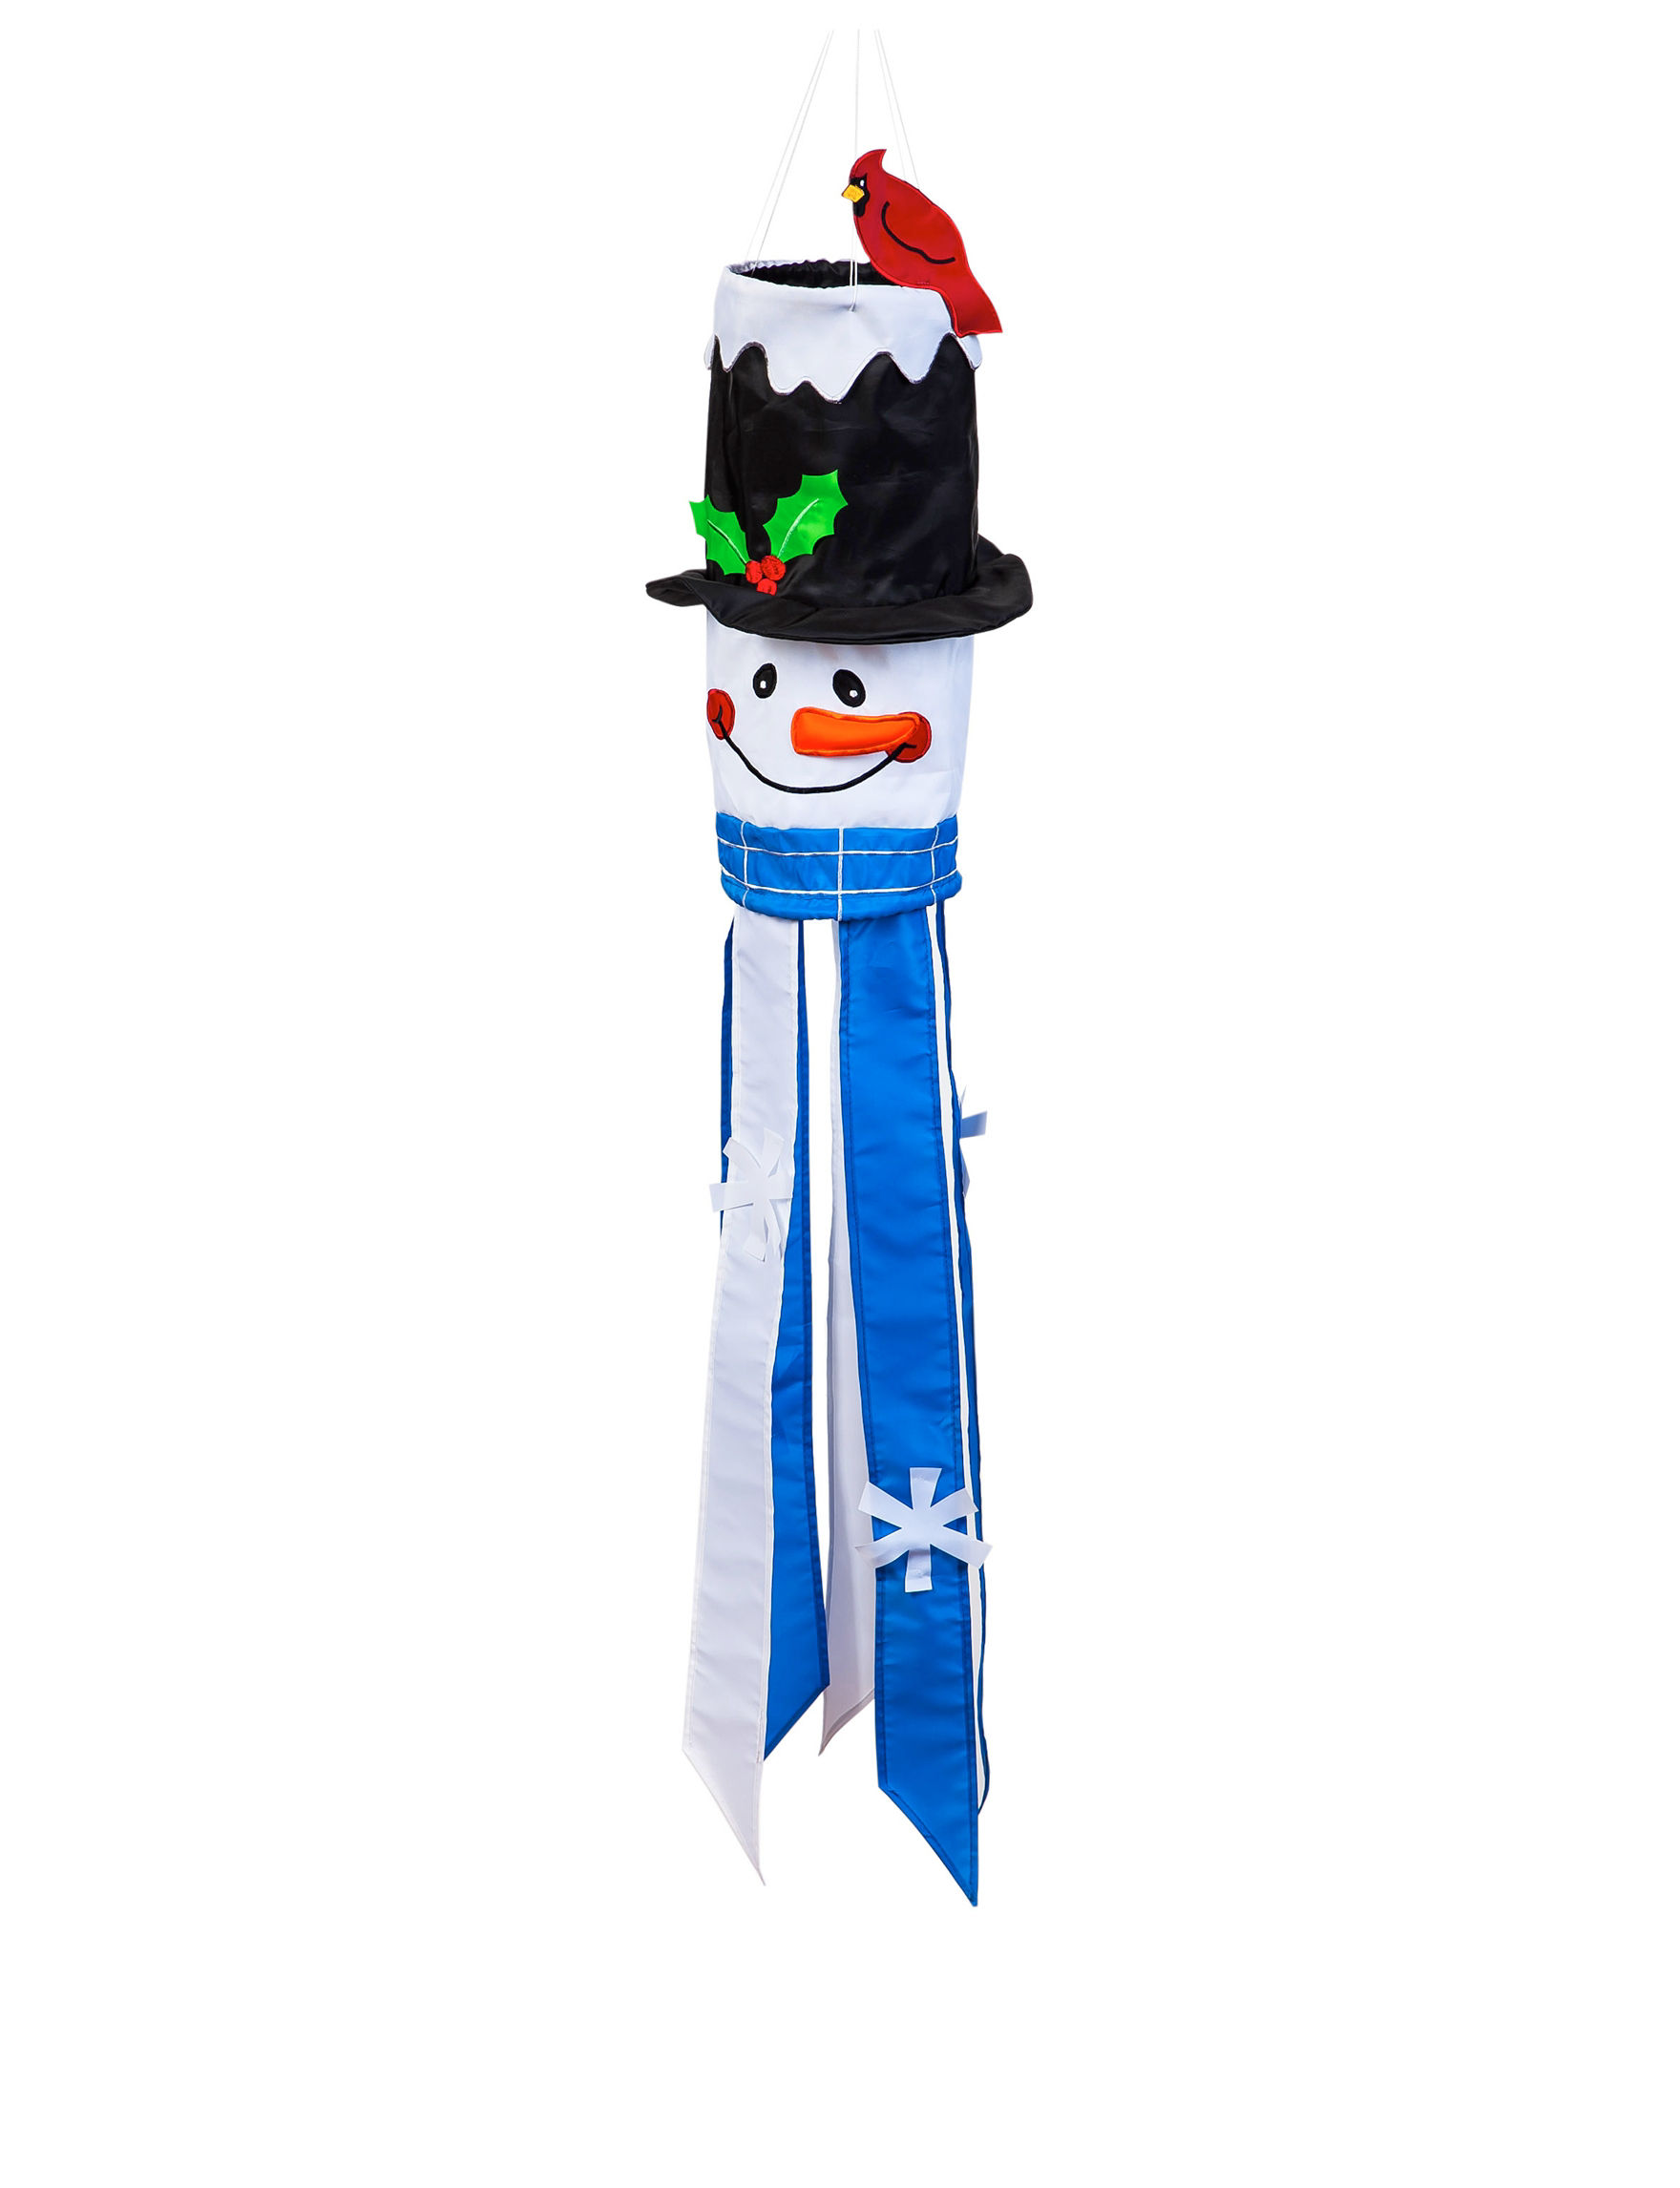 Evergreen Blue Flags & Flag Hardware Outdoor Holiday Decor Holiday Decor